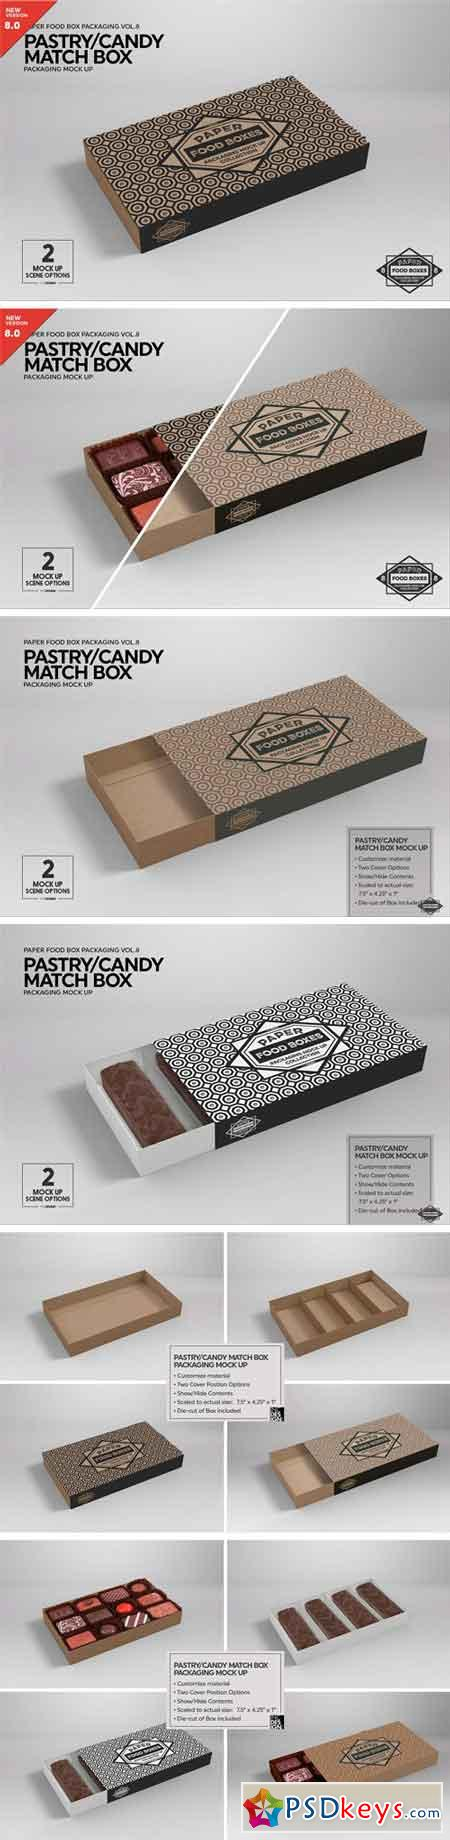 Match Box Style Packaging MockUp 2181811